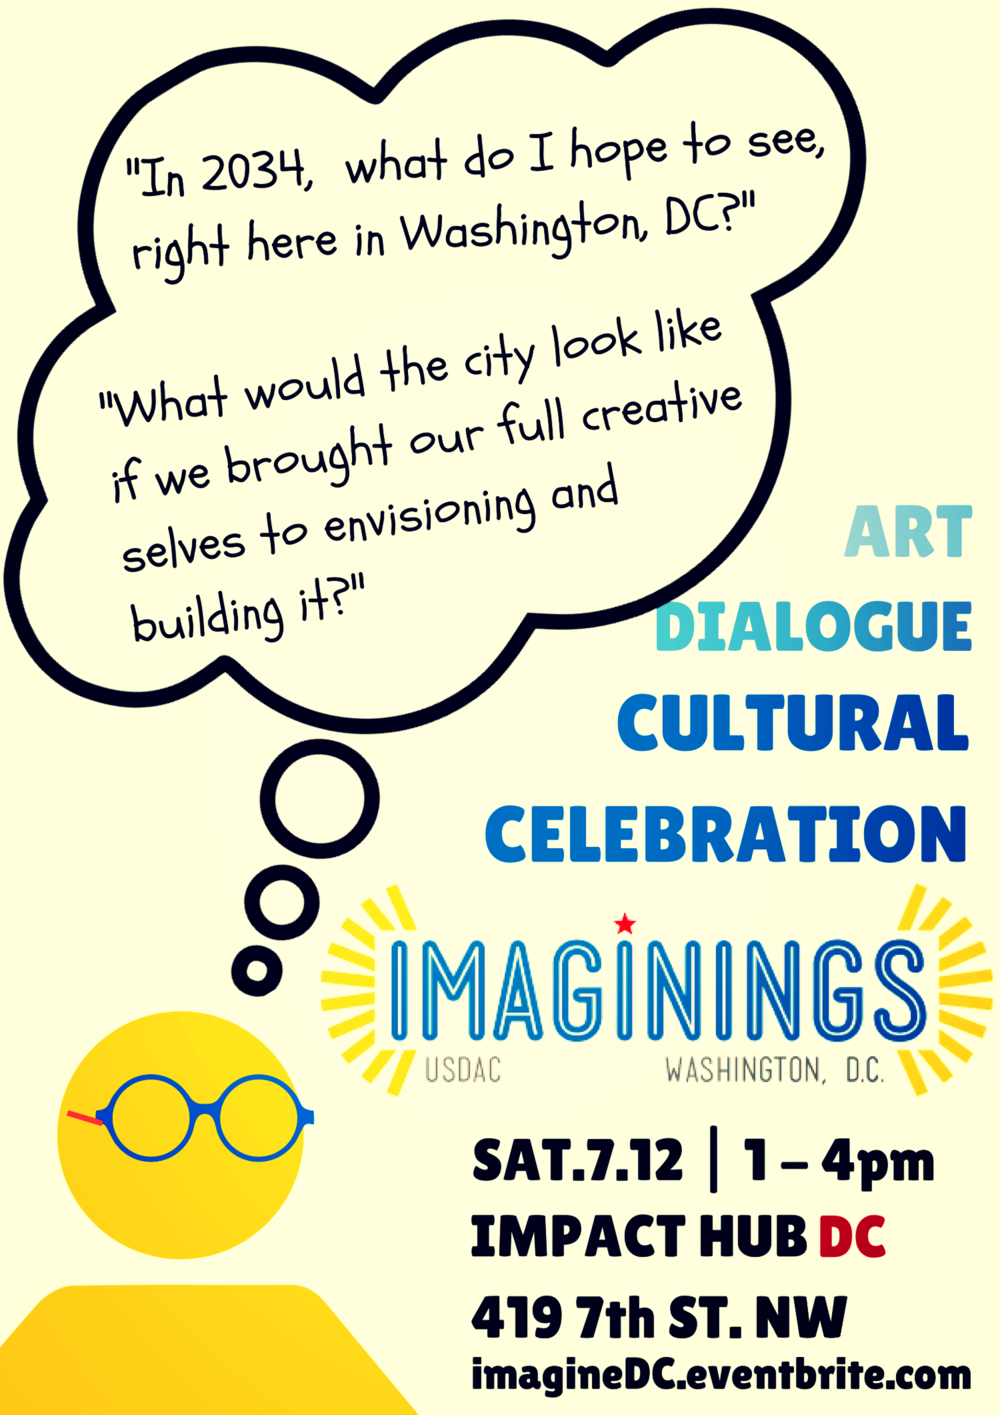 First act as a Cultural Agent with the US Department of Arts and Culture: to host an Imagining, an arts-infused gathering where community members vision for the community they want to see. 2014